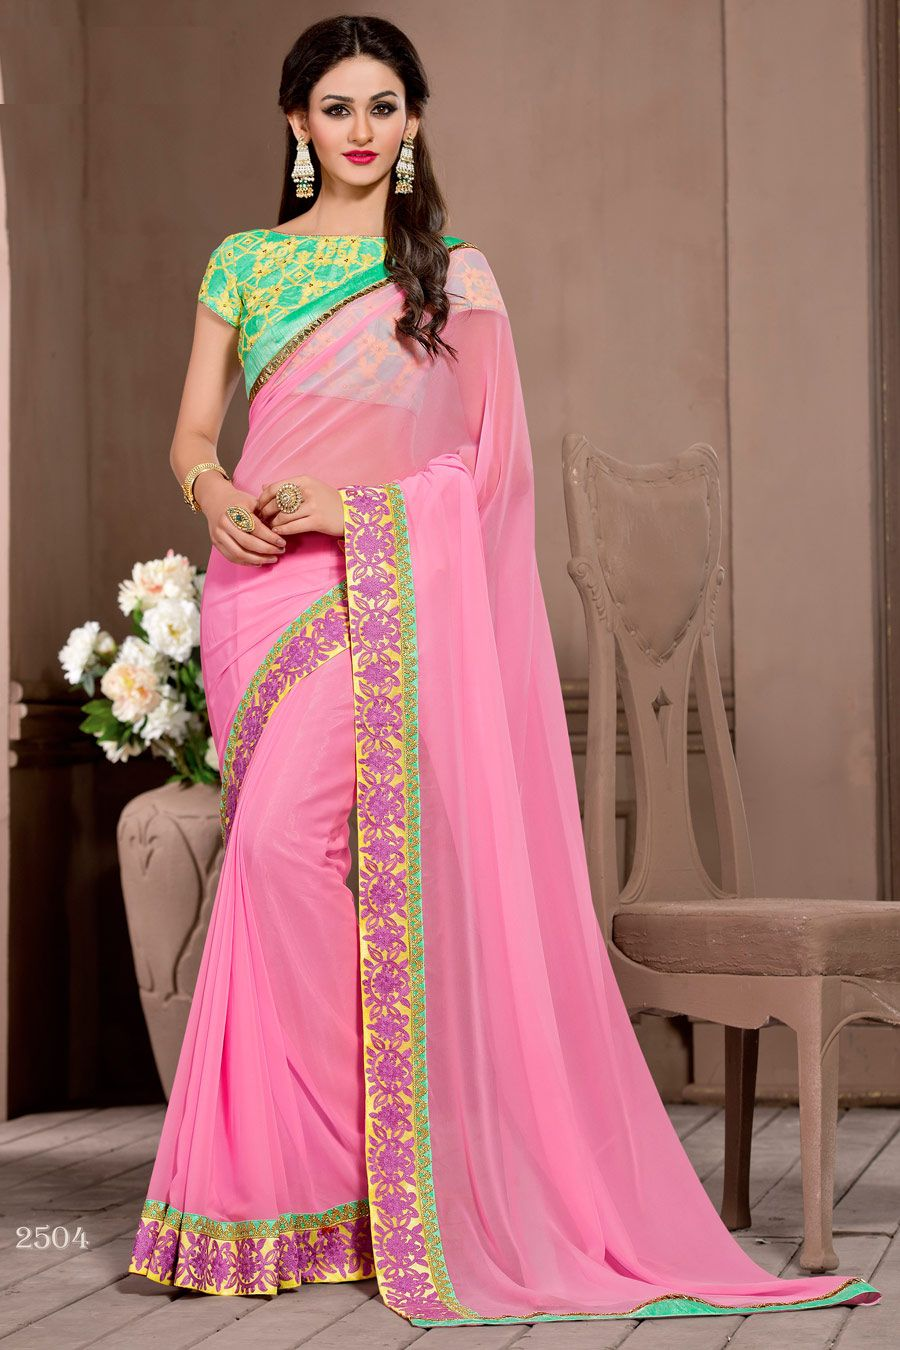 Buy Now Baby Pink Pure Georgette Embriodery Work Designer Partywear Saree. More Collection of Designer Wedding Partywear Saree On Offloo .